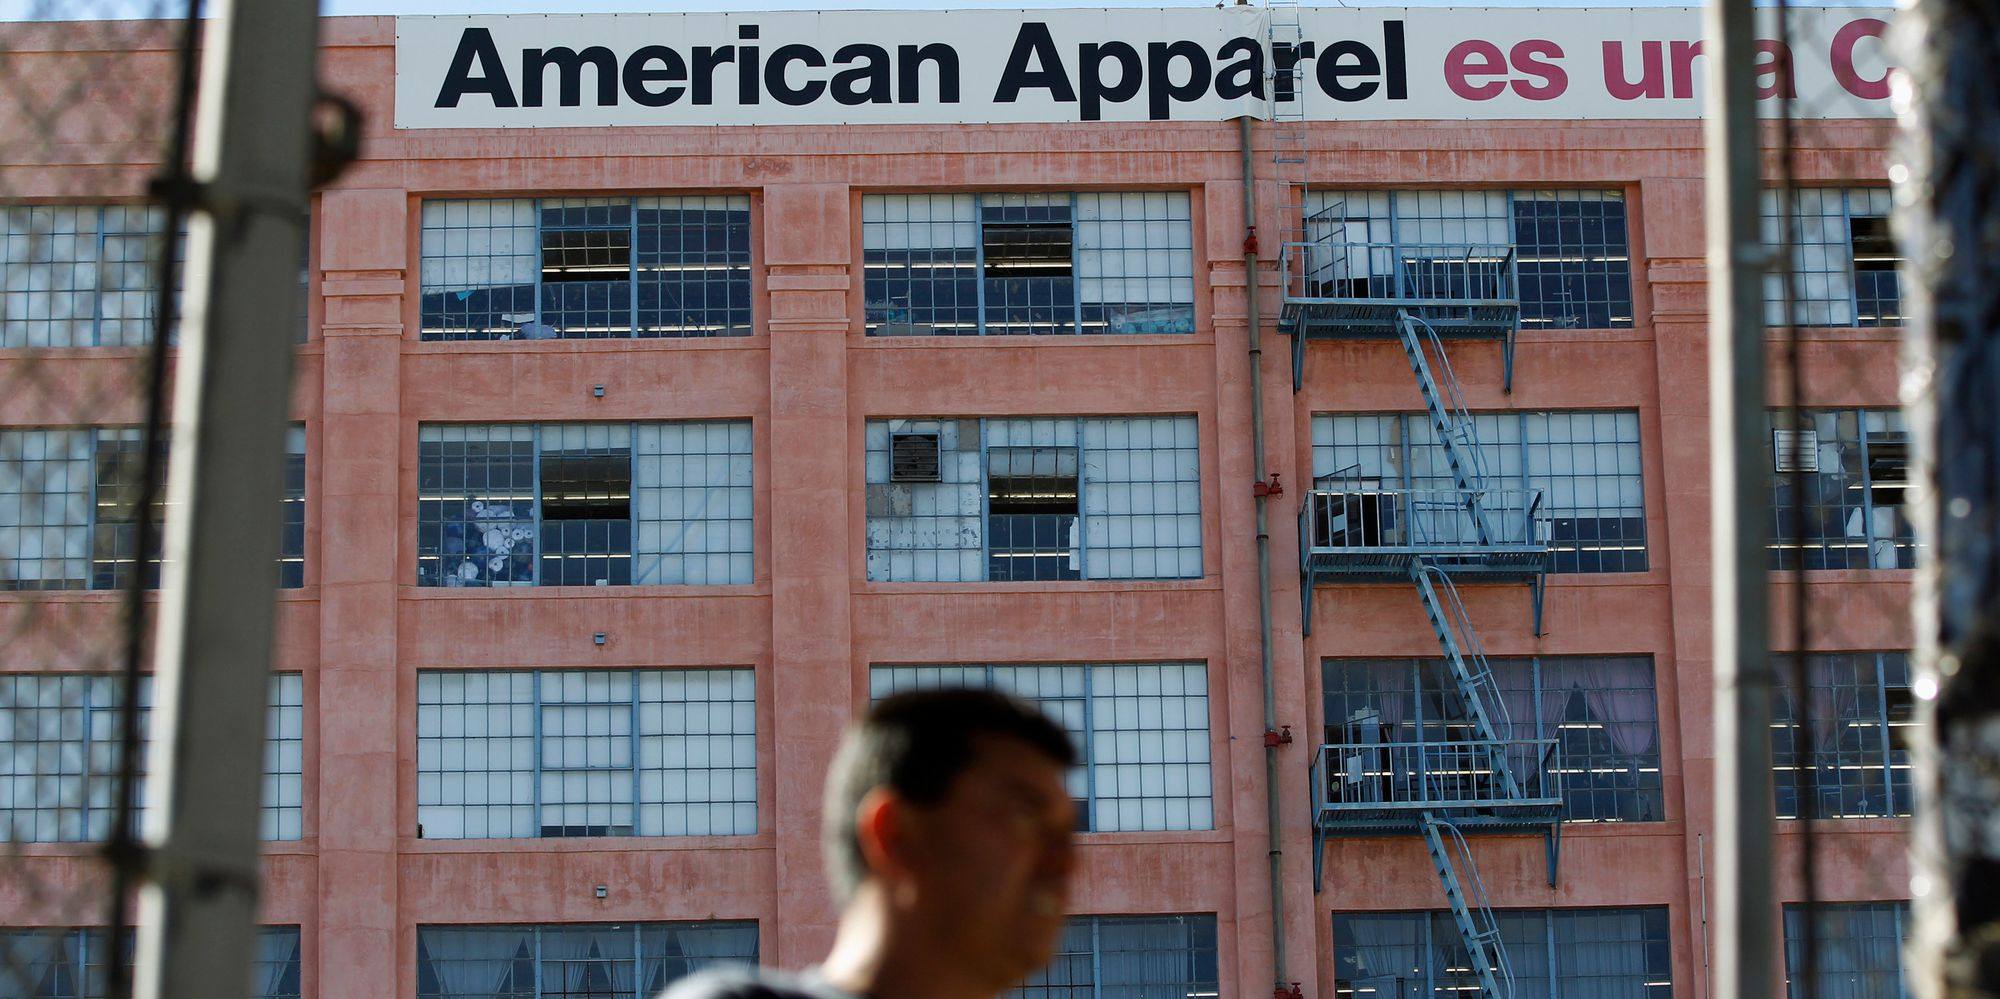 American Apparel Stores To Close After Canadian Purchase